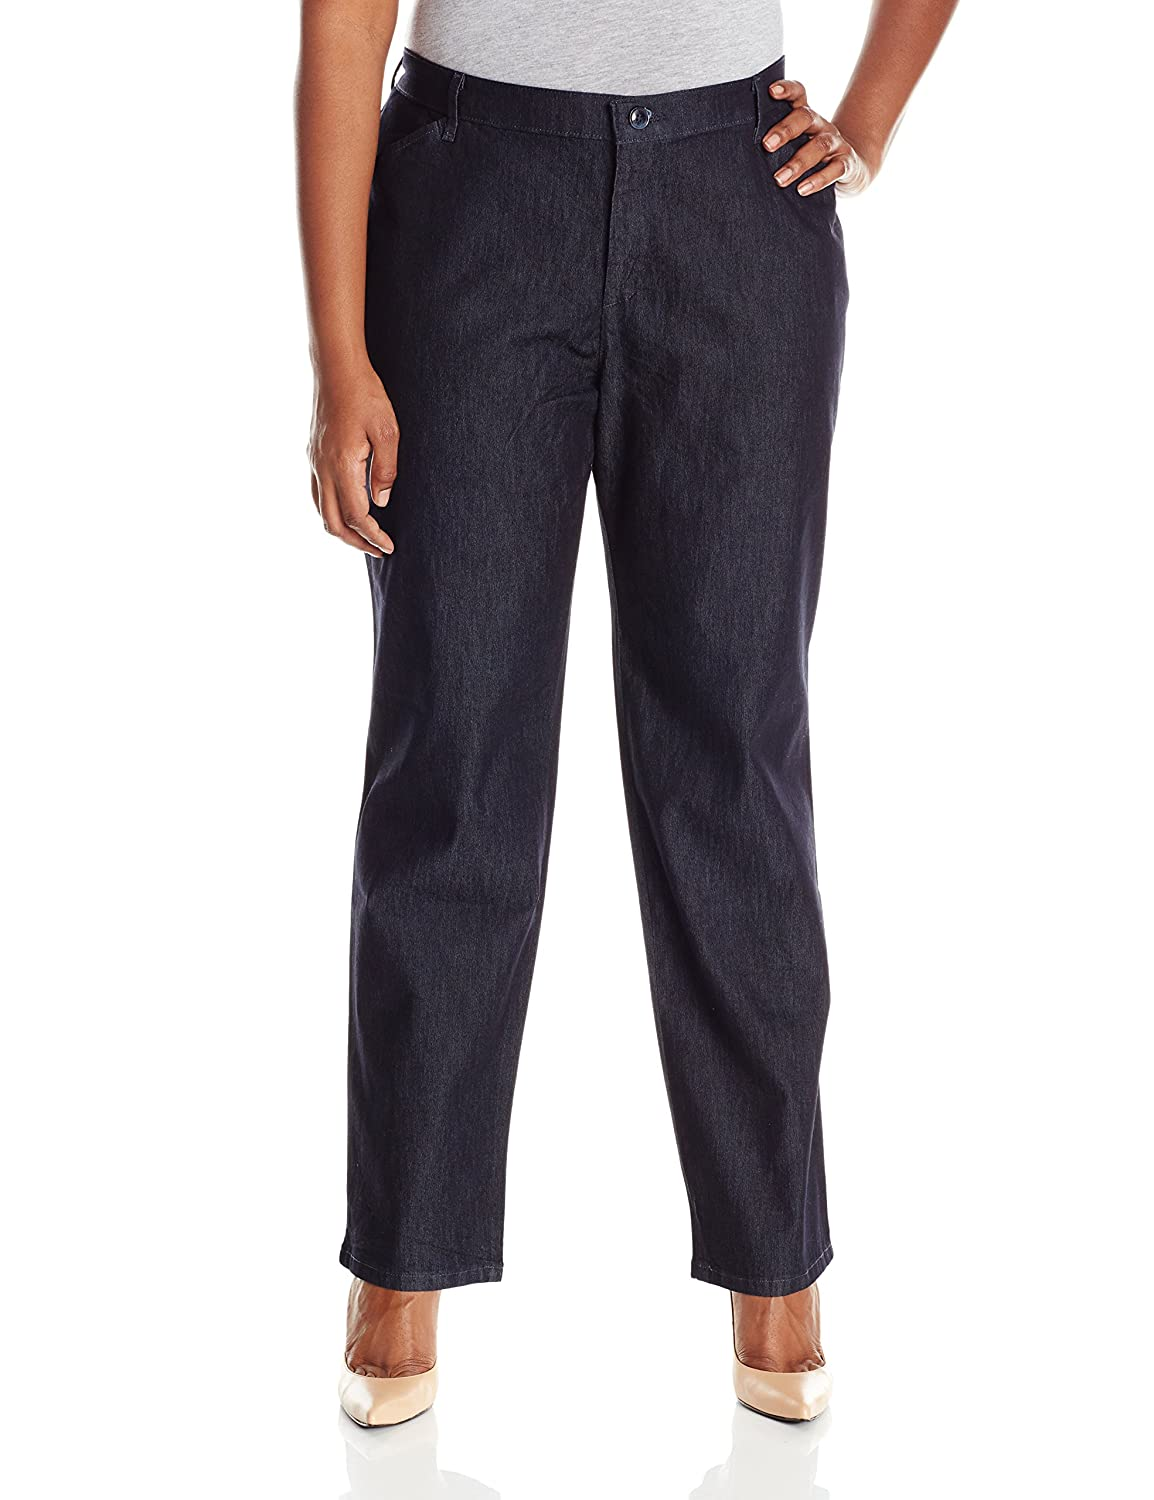 0dbed11bf LEE Women's Plus Size Relaxed Fit All Day Straight Leg Pant at Amazon  Women's Clothing store: